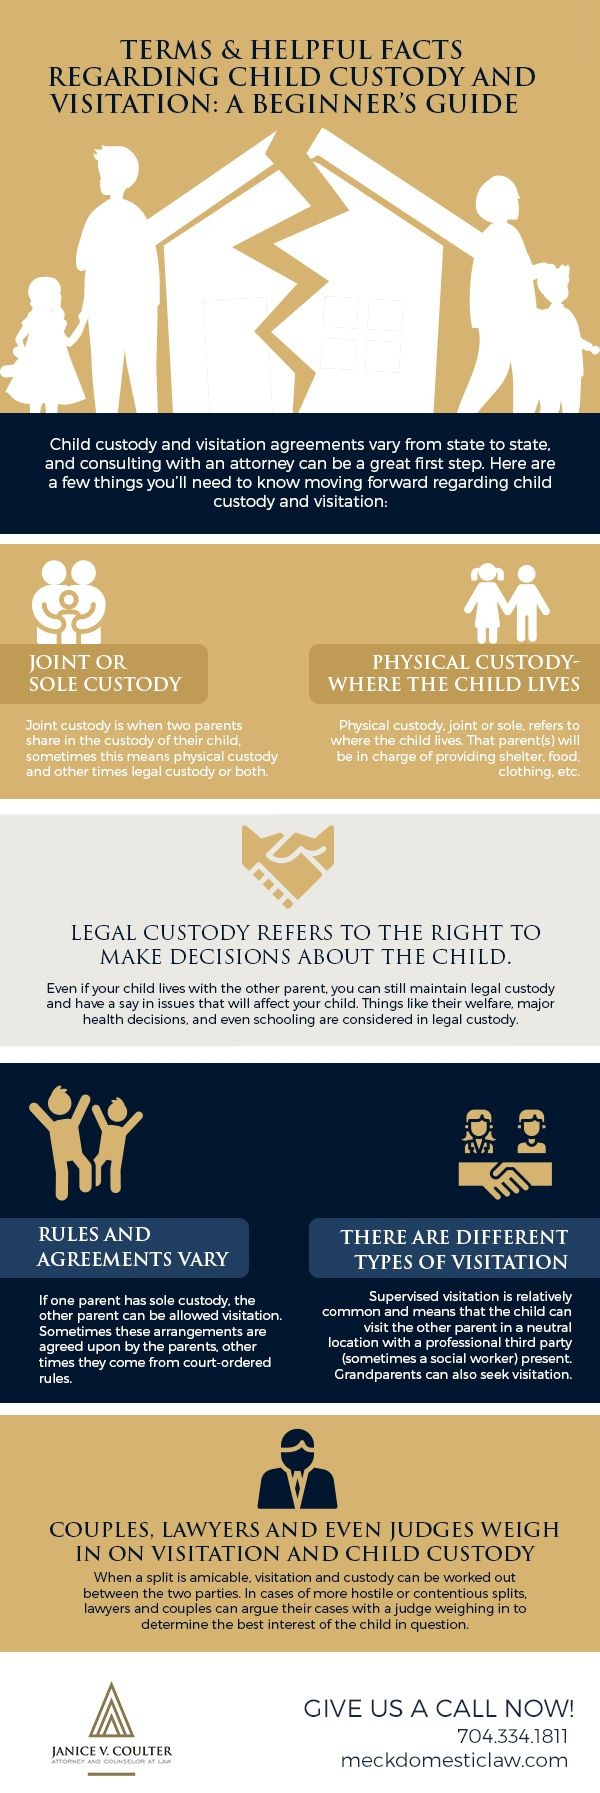 Terms & Helpful Facts Regarding Child Custody and Visitation: A Beginner's Guide [infographic]